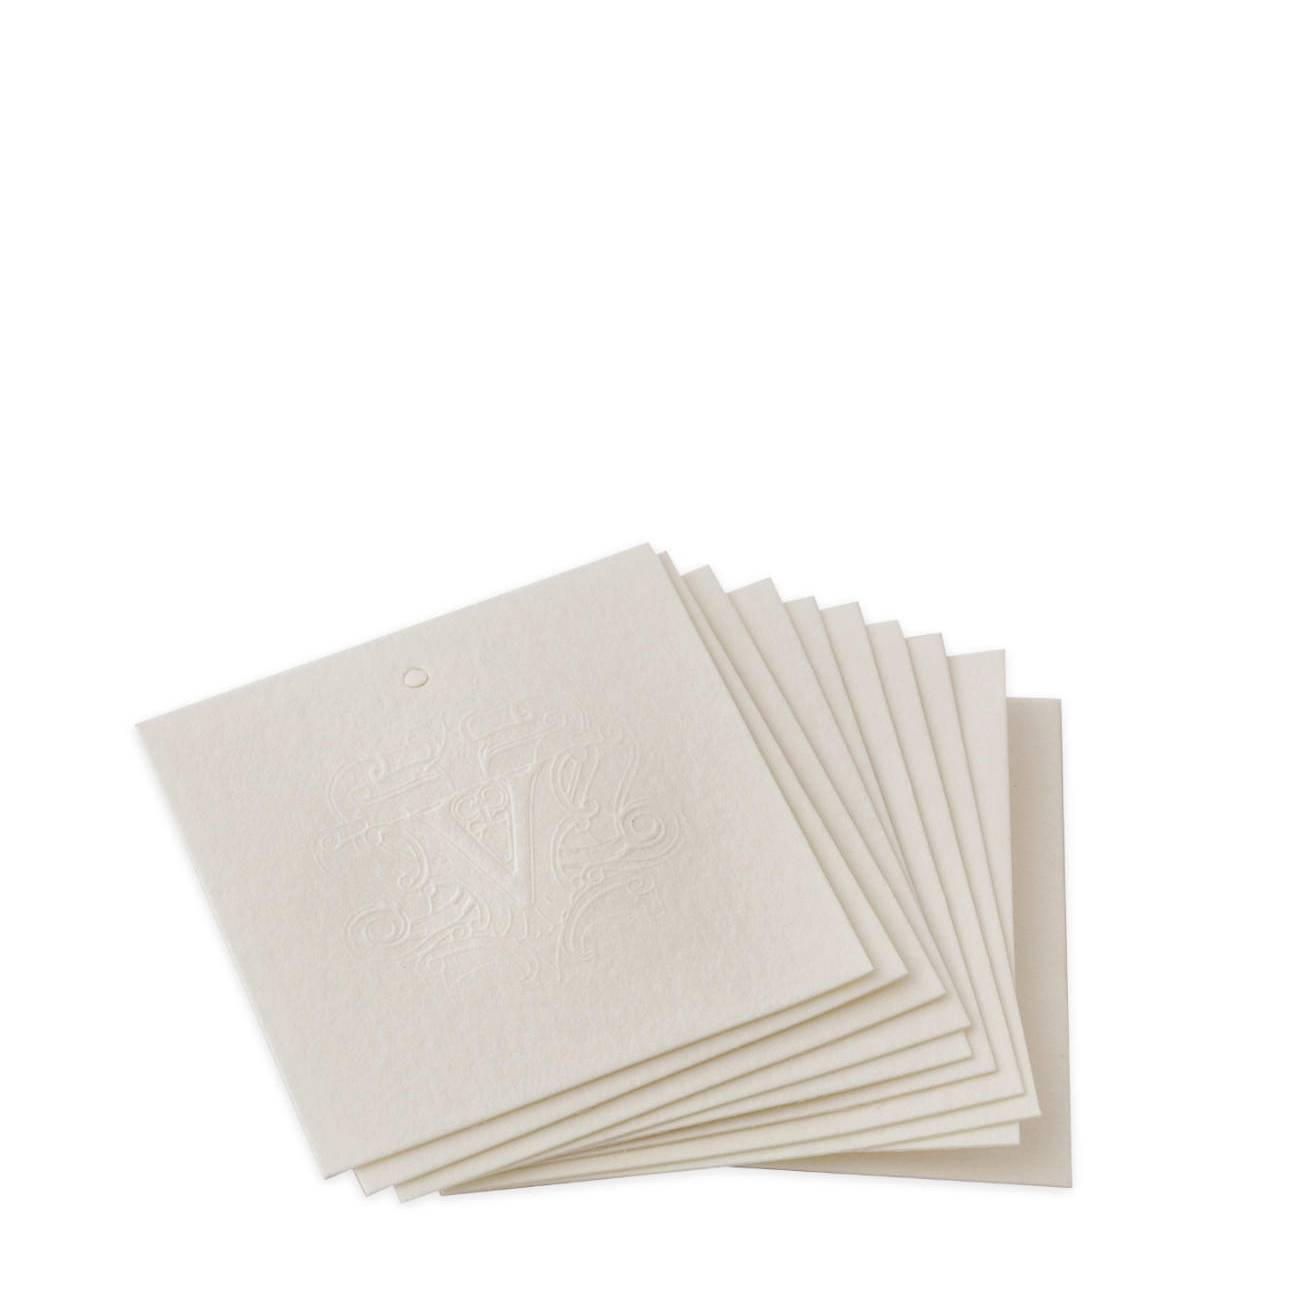 LINEN PAPERS GINGER & LIME SCENTED PAPERS